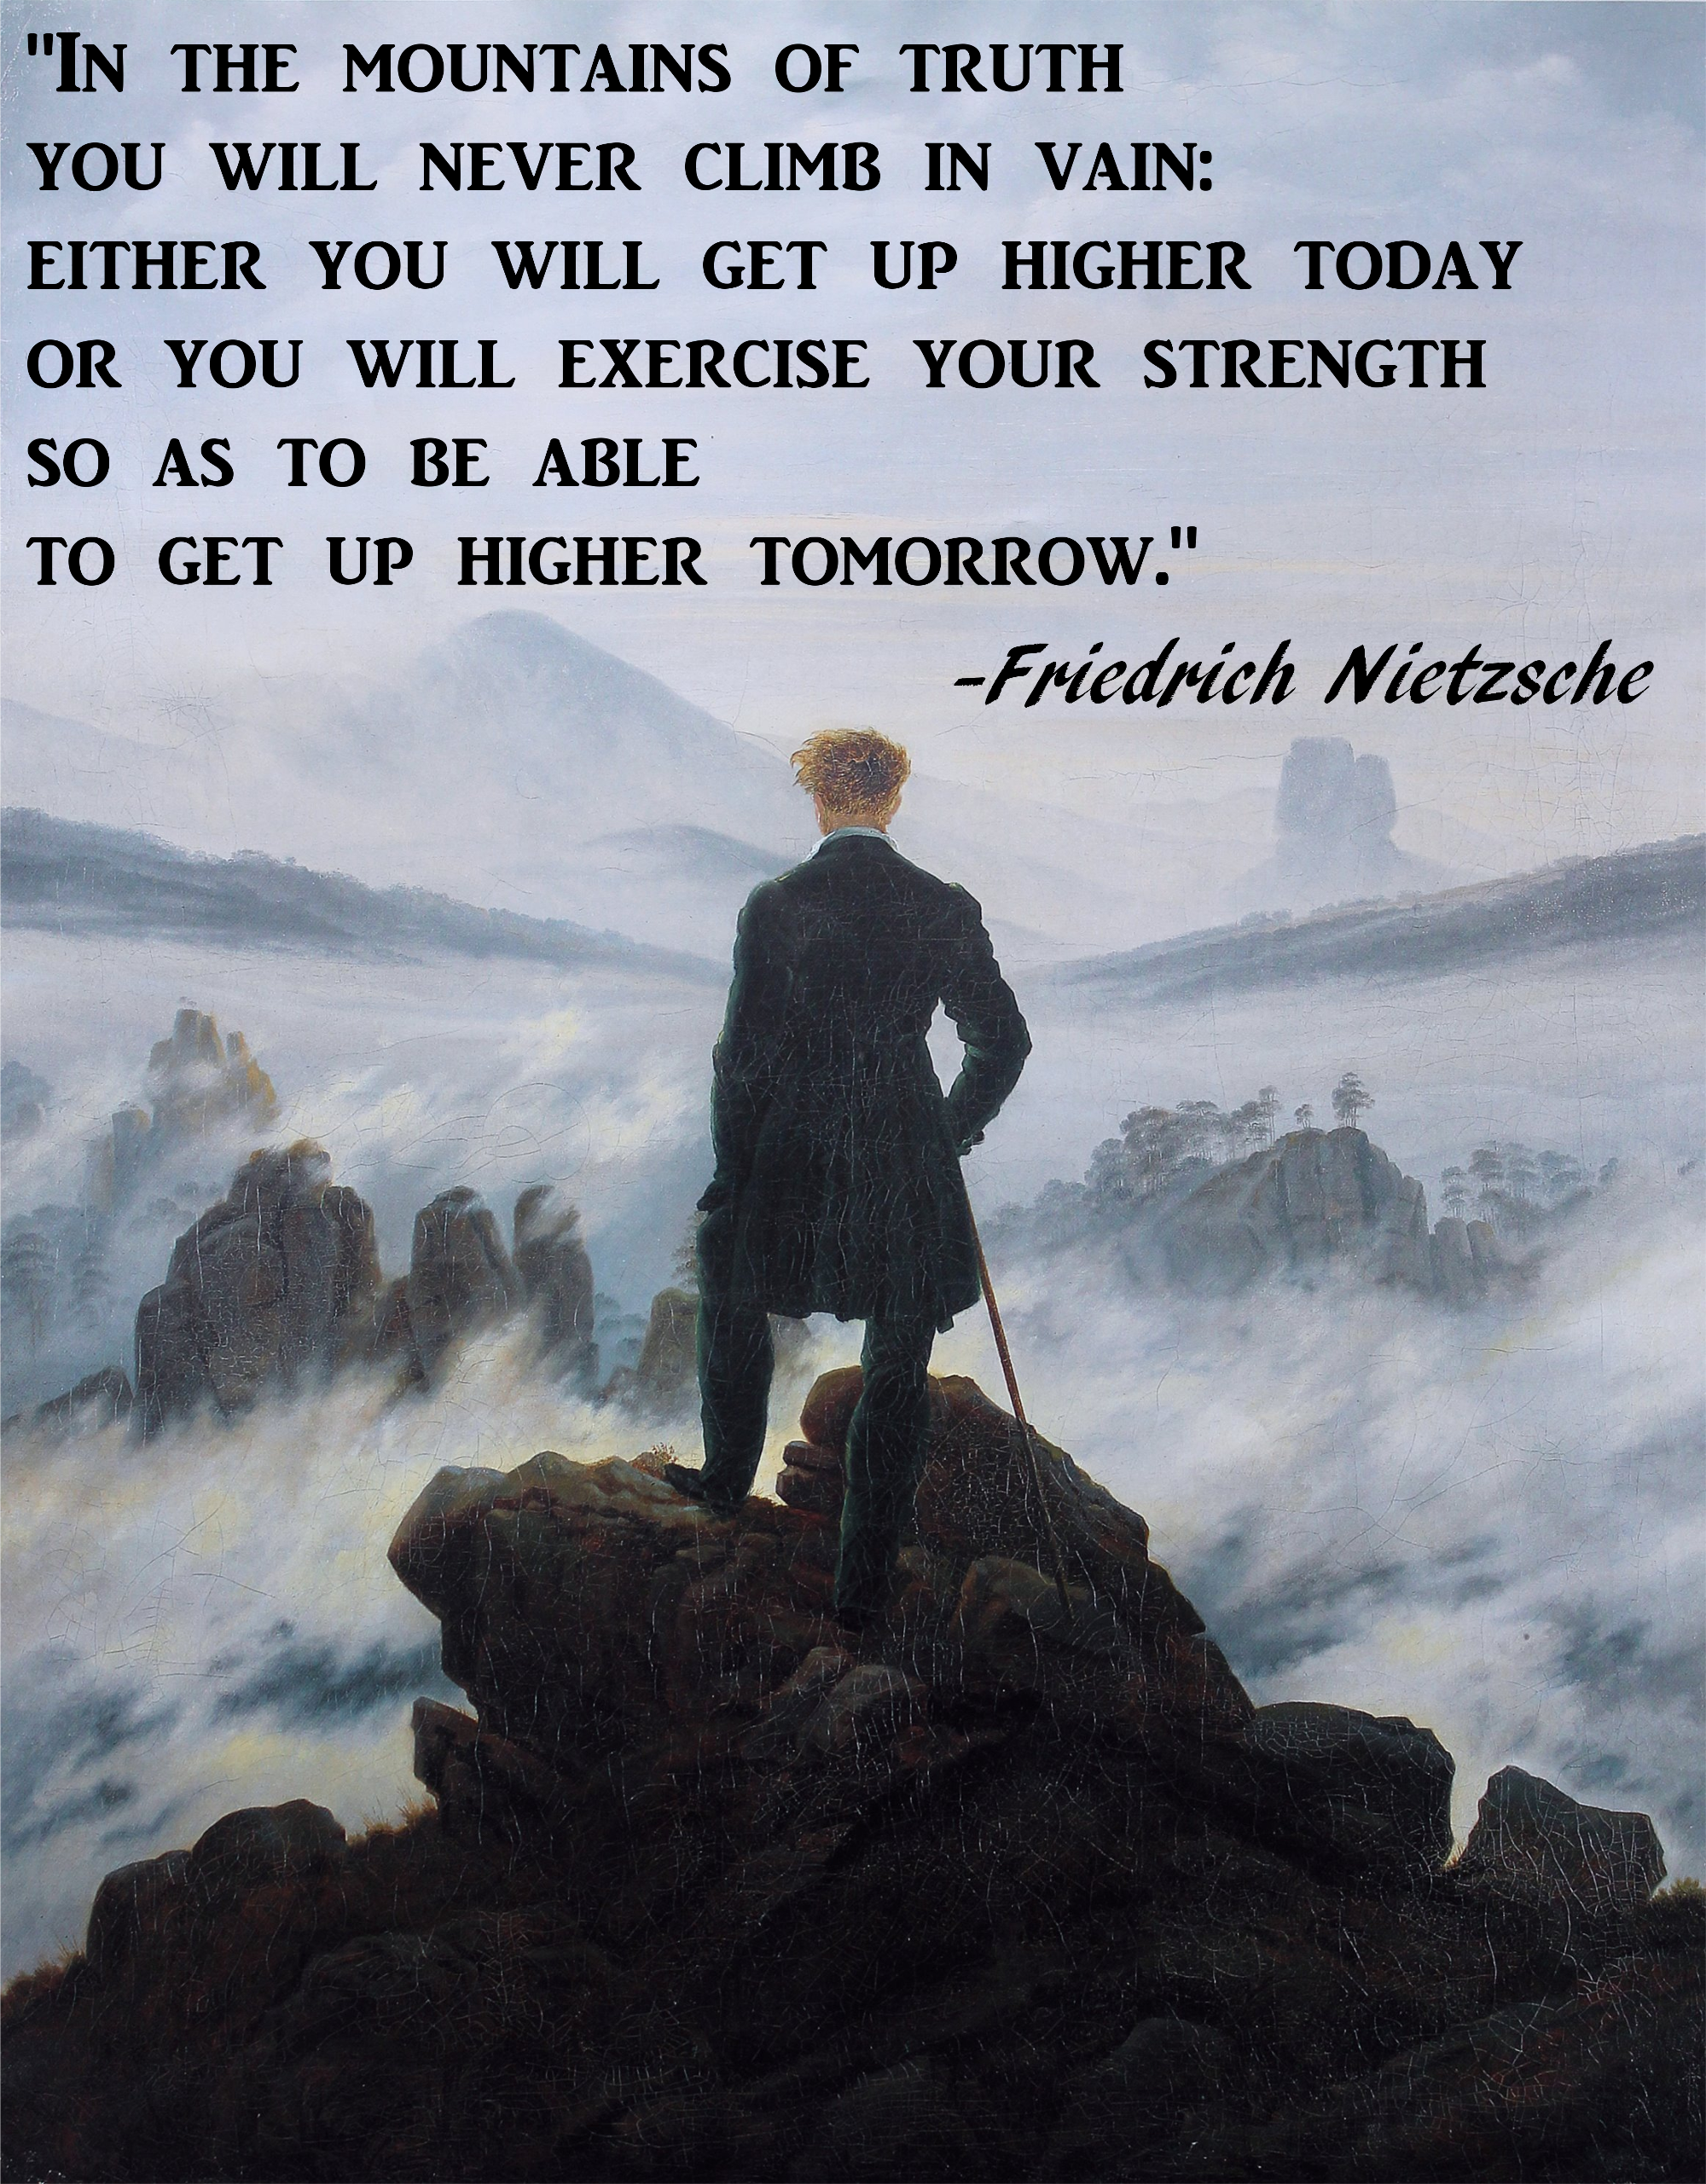 "[IMAGE] In the mountains of truth you will never climb in vain; Either you will get up higher today or you will exercise your strength so as to be able to get up higher tomorrow."" -Friedrich Nietzsche"